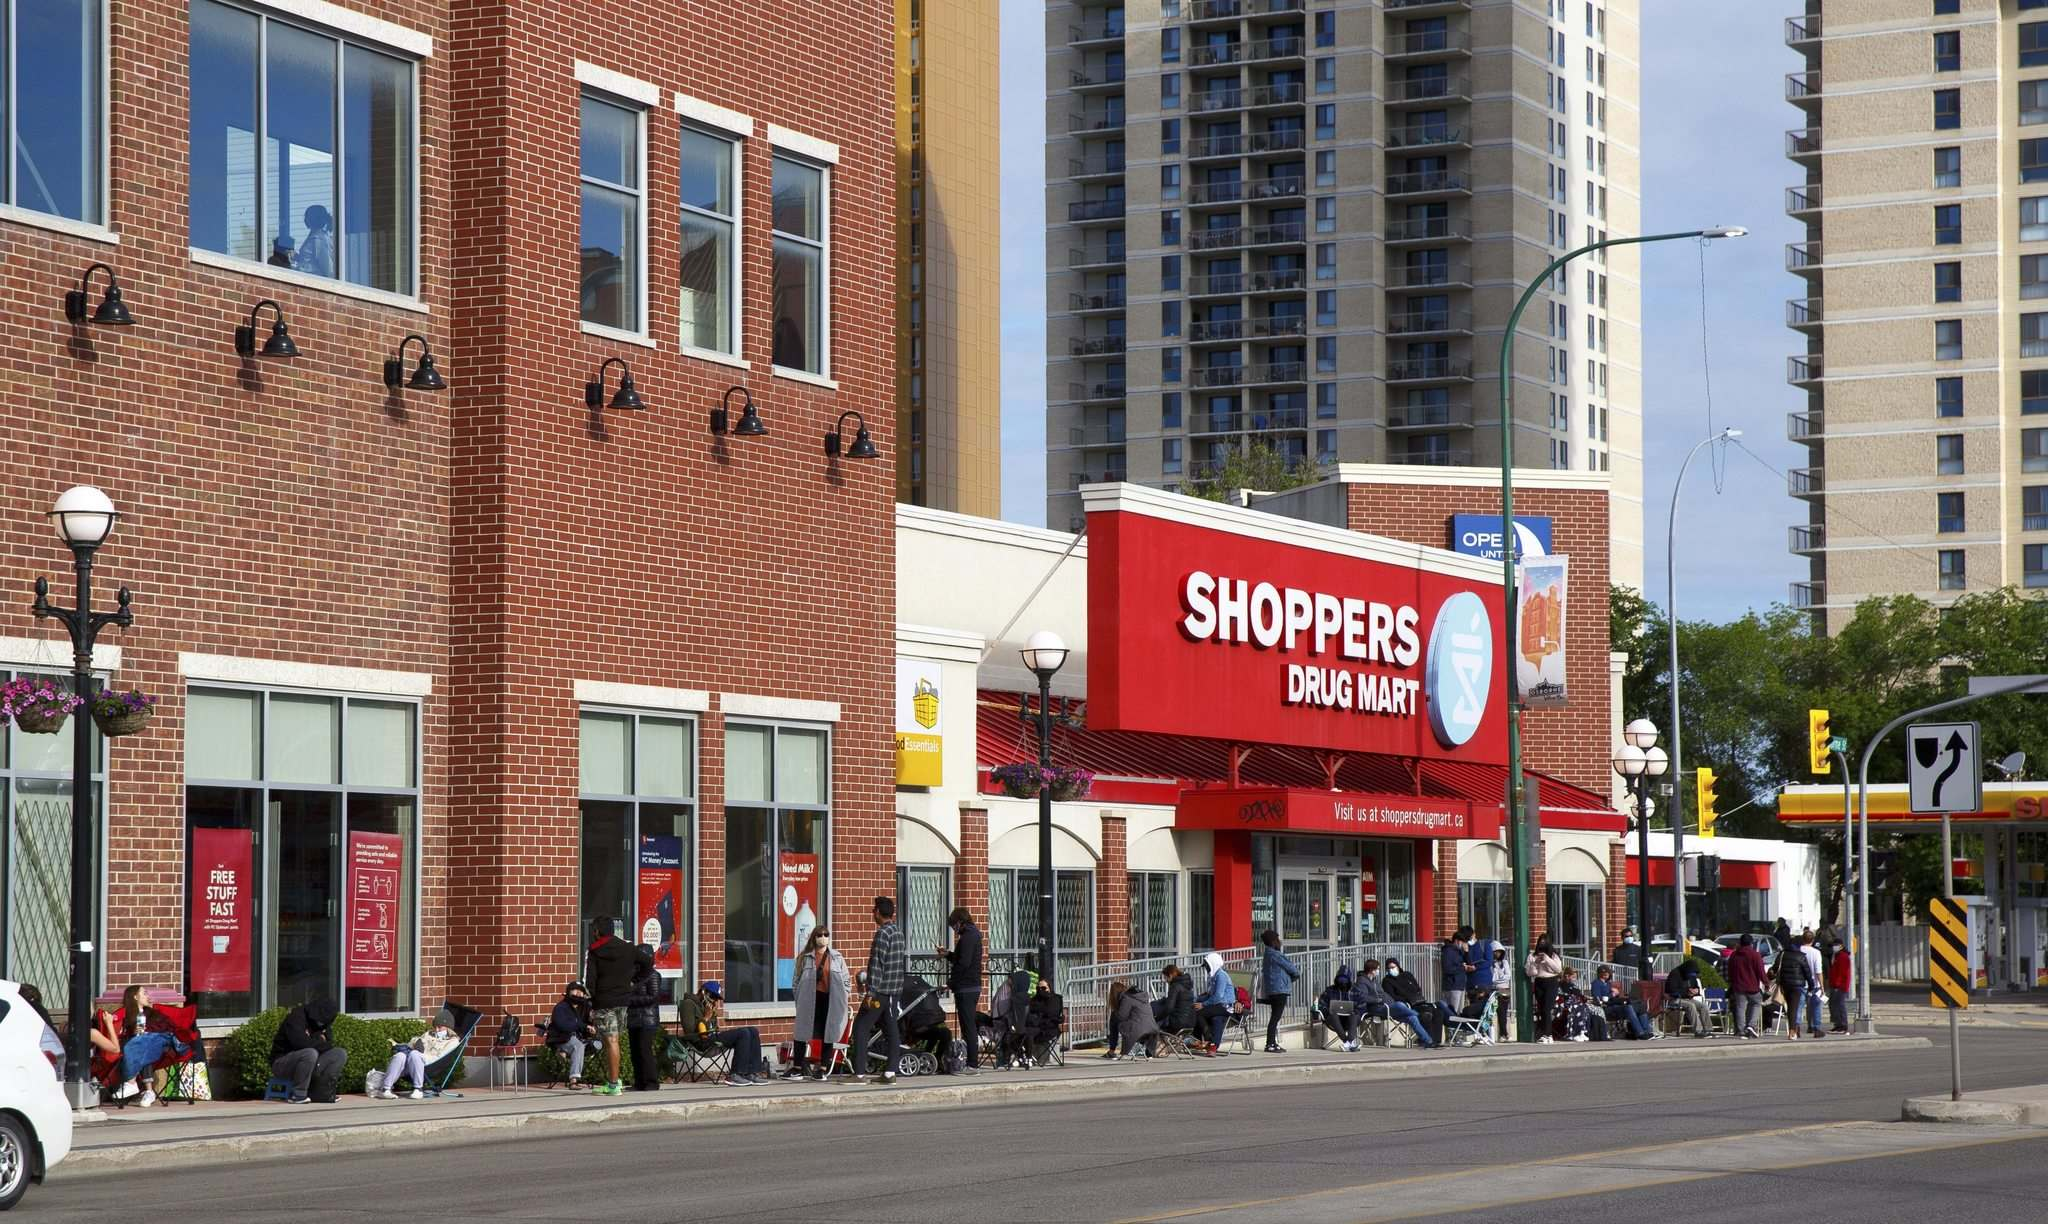 MIKE DEAL / WINNIPEG FREE PRESS</p><p>Hundreds of people line up early Monday morning in the hopes of getting a Pfizer vaccine at the Shoppers Drug Mart in Osborne Village.</p>